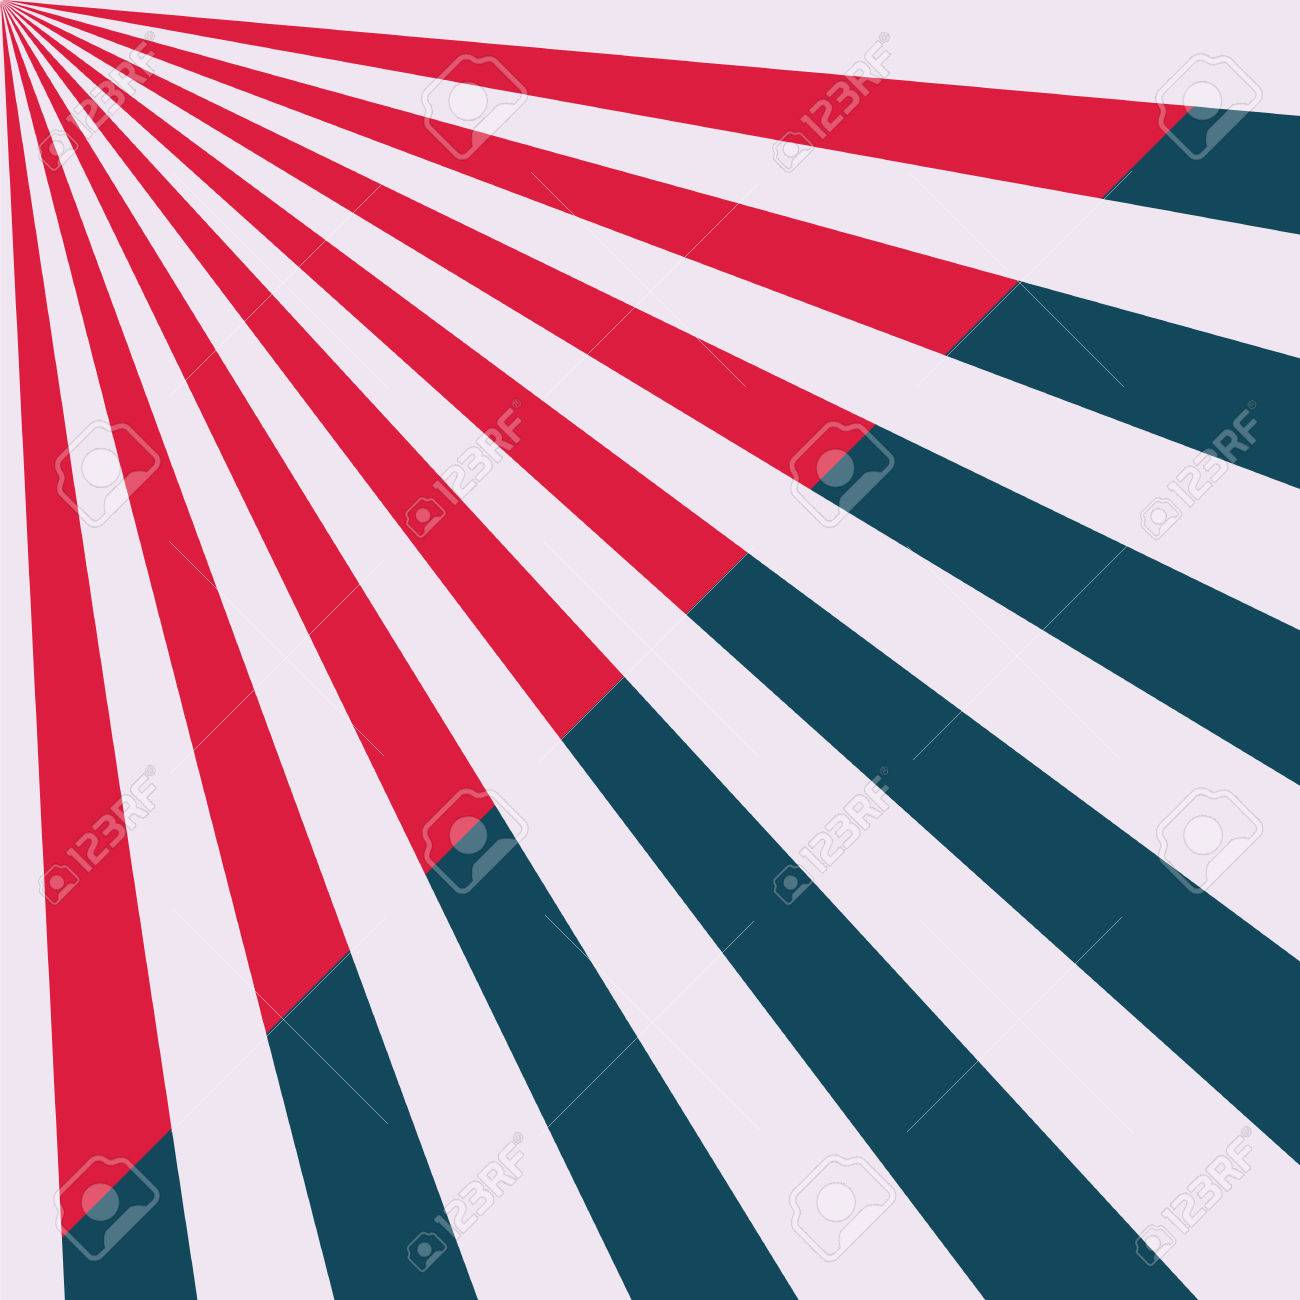 background red blue white stripes rays modern abstract creative royalty free cliparts vectors and stock illustration image 63003891 background red blue white stripes rays modern abstract creative